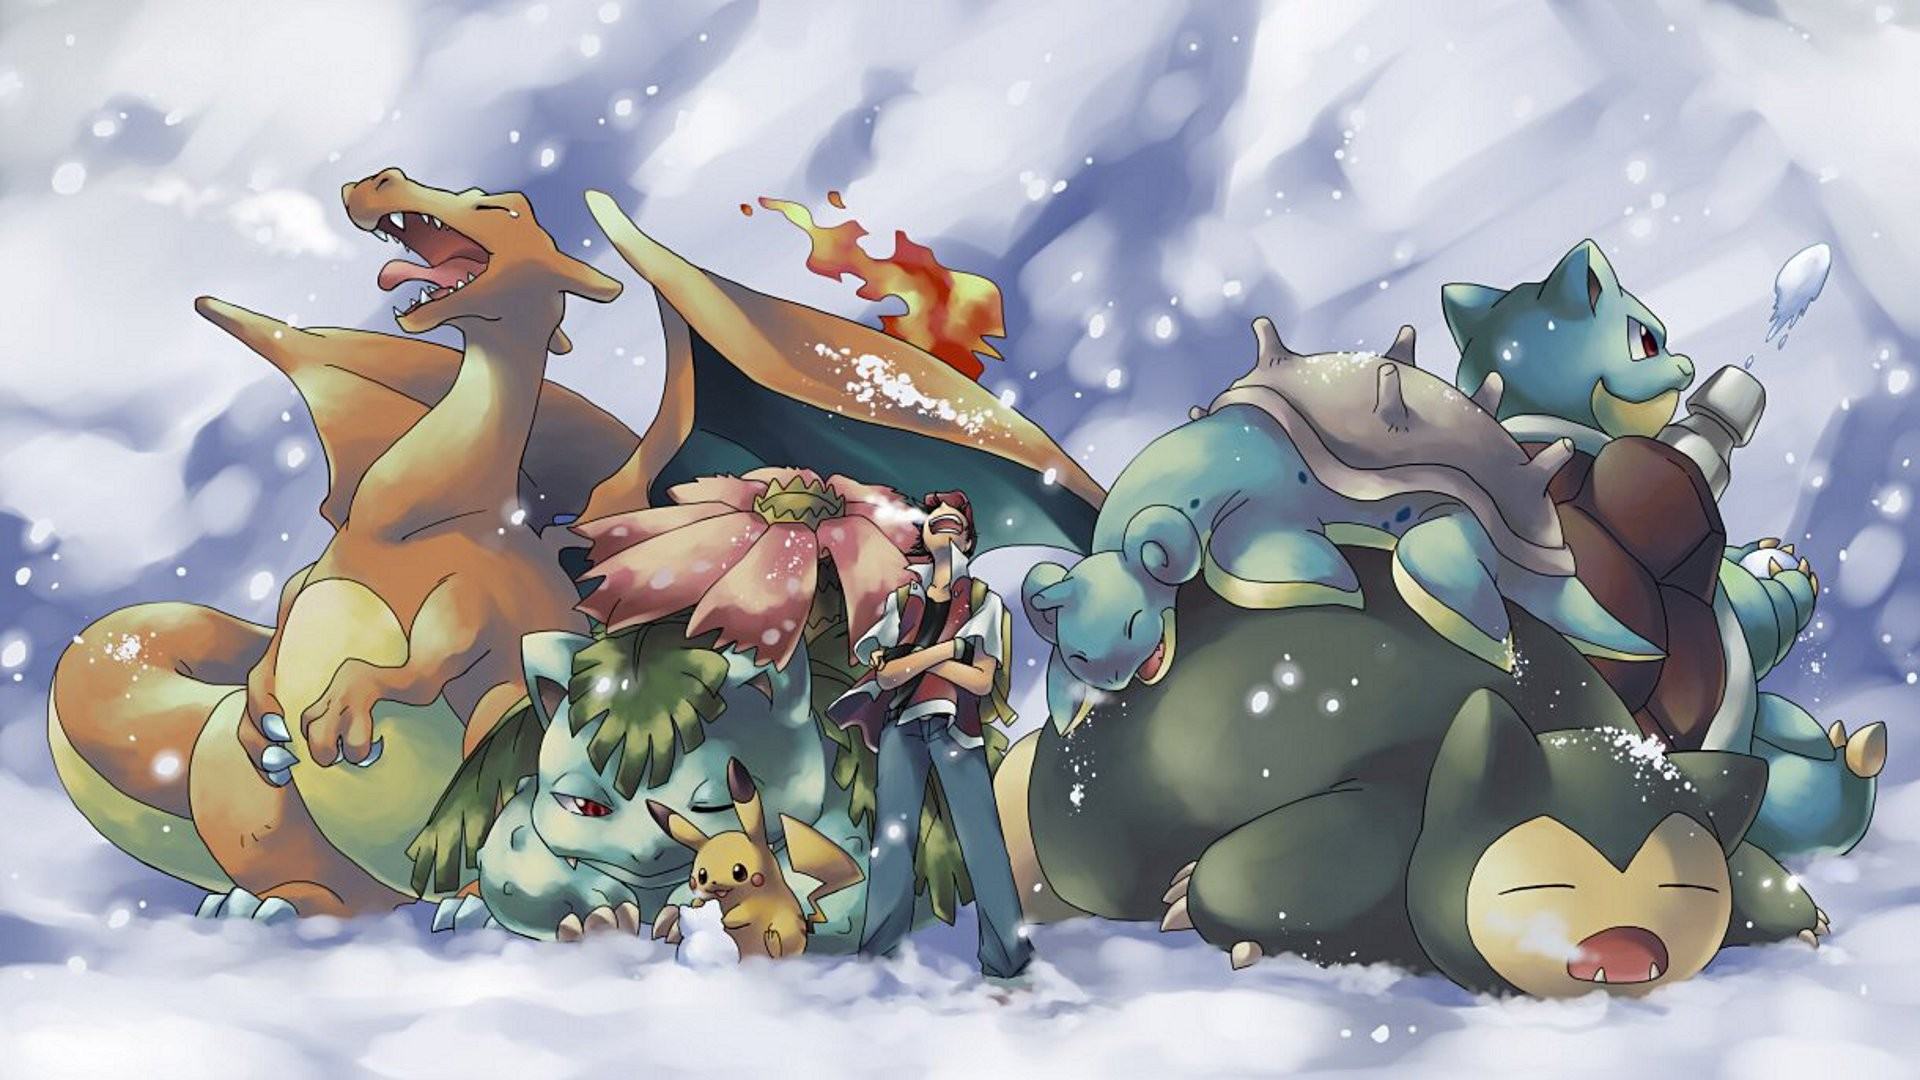 Pokemon HD Wallpaper 1 Download Free Awesome High Resolution